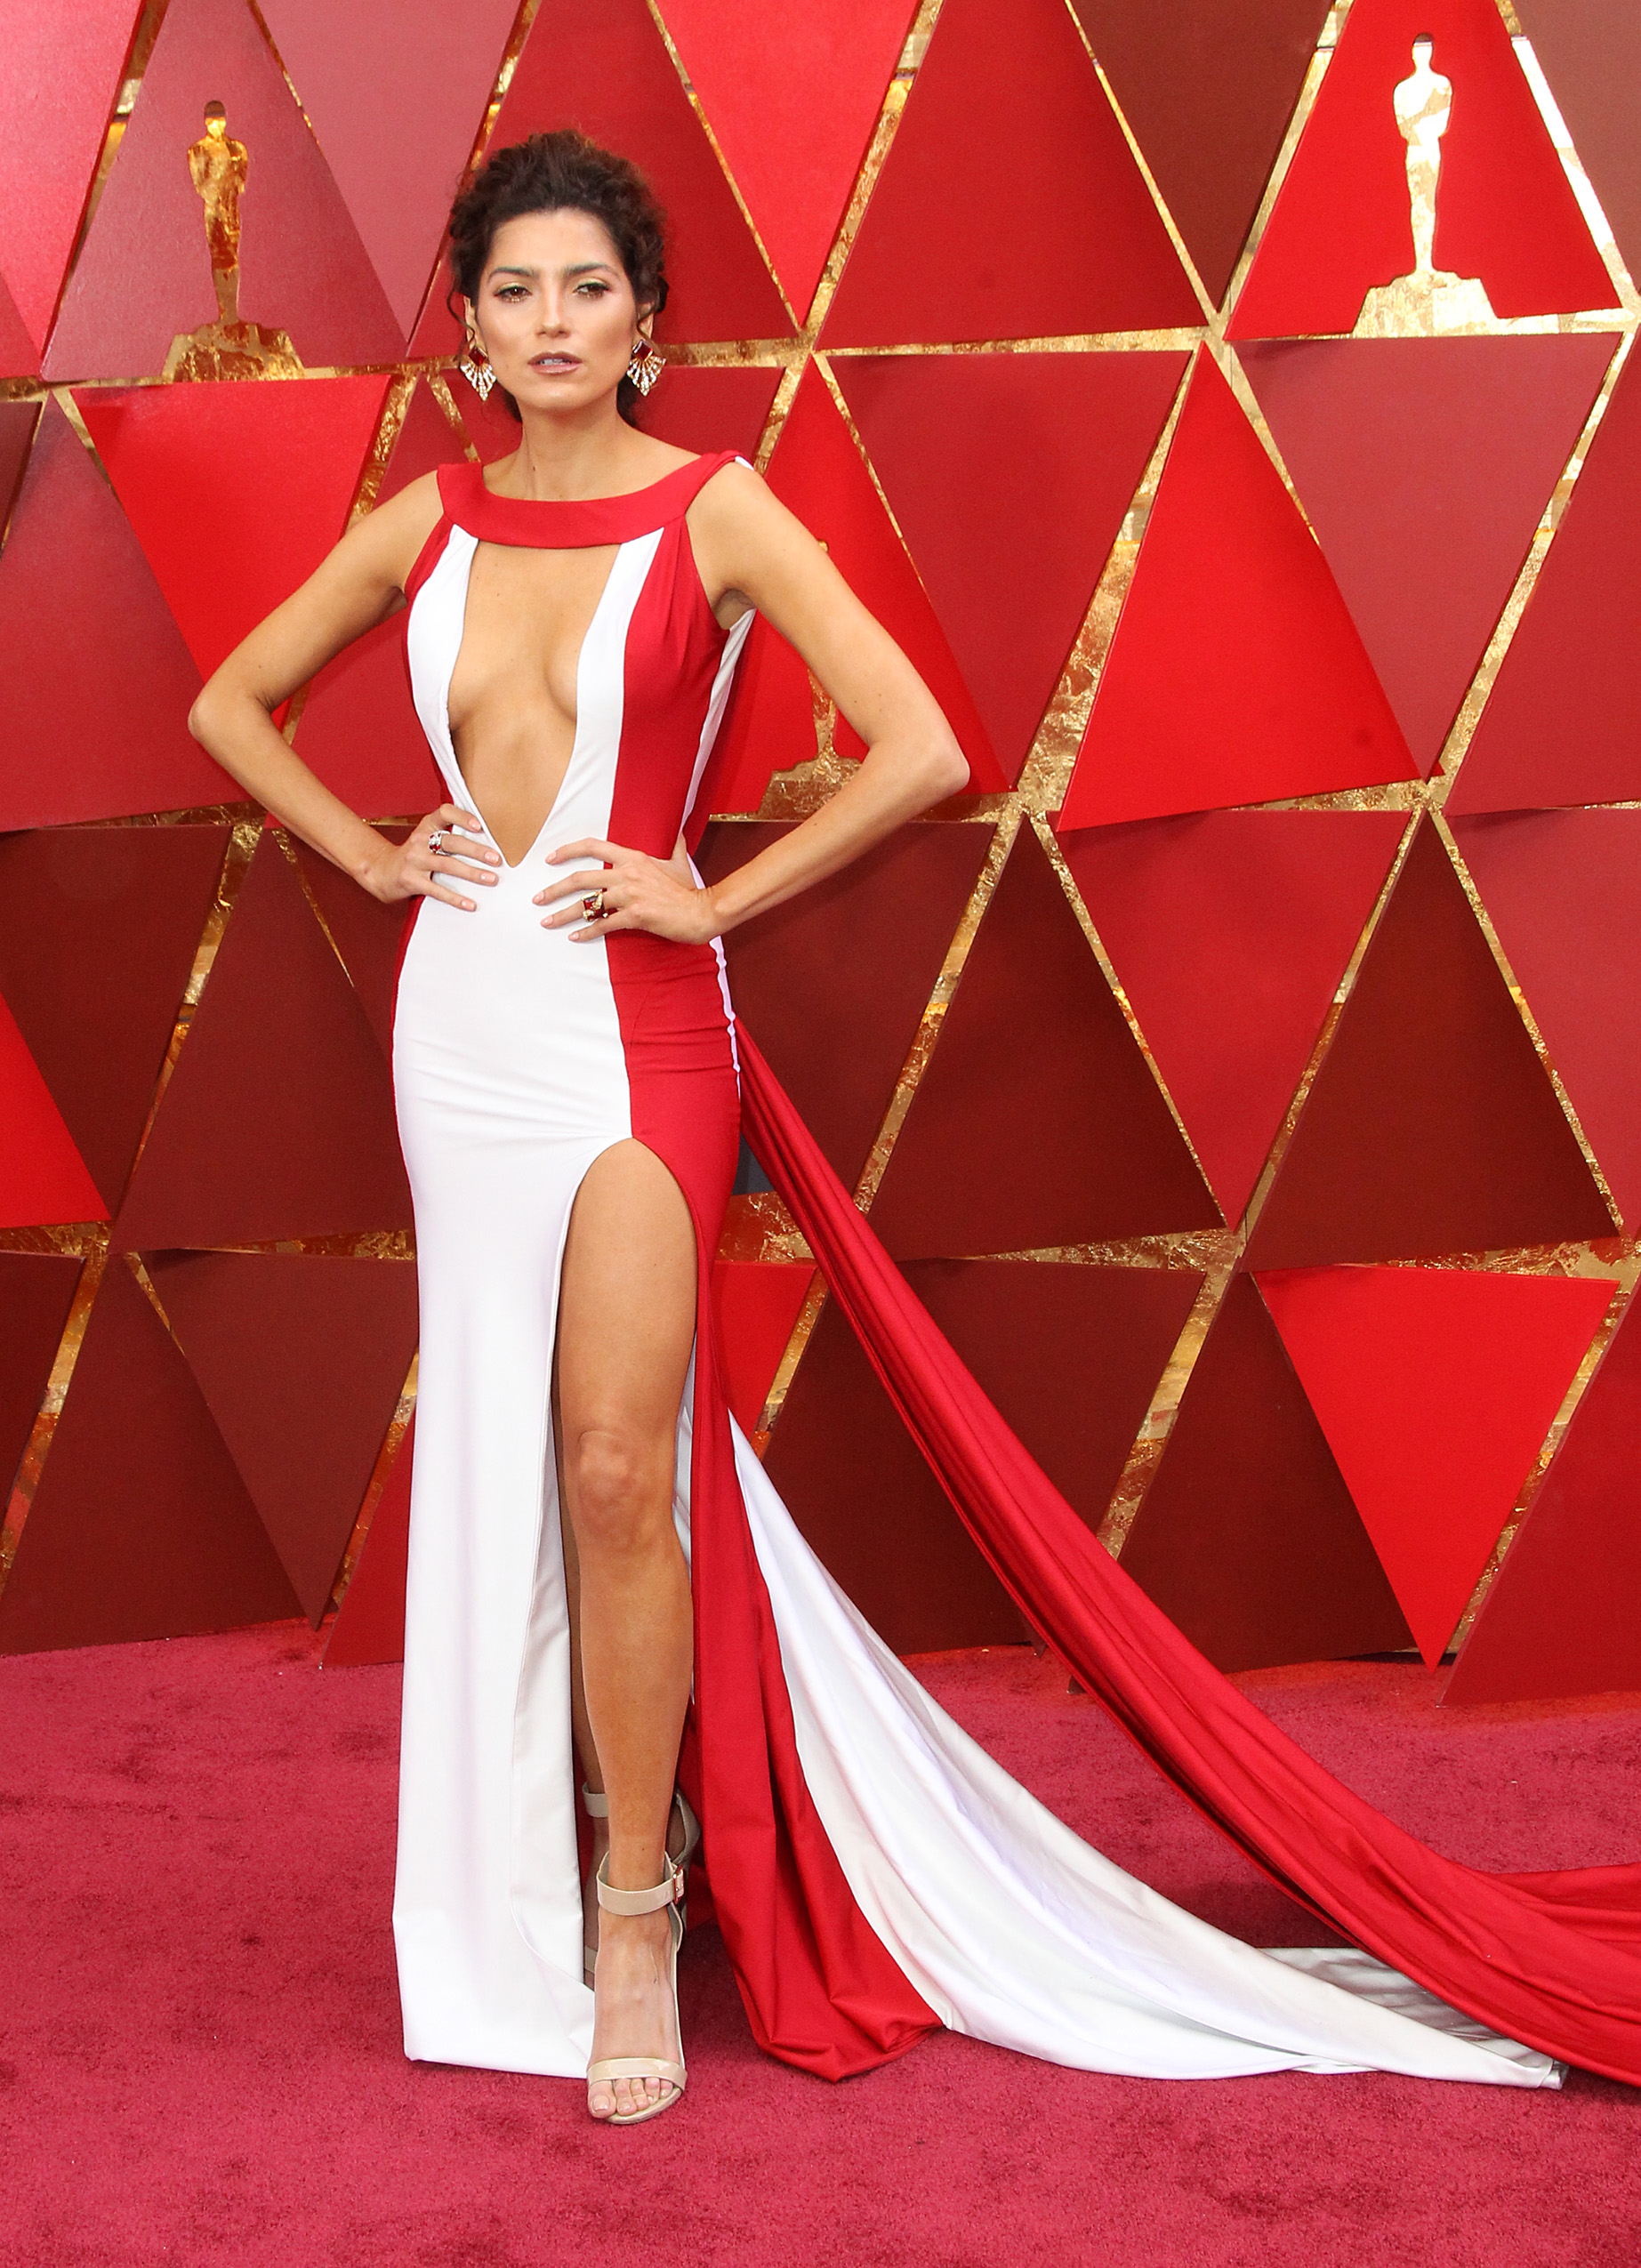 I guess Blanca learned nothing from her wardrobe malfunction on the red carpet last year, and instead decided to pair her higher than high slit with a plunging neckline this year as well. Trying. Too. Hard. Girlfriend.(Image: Adriana M. Barraza/WENN.com)<p></p>